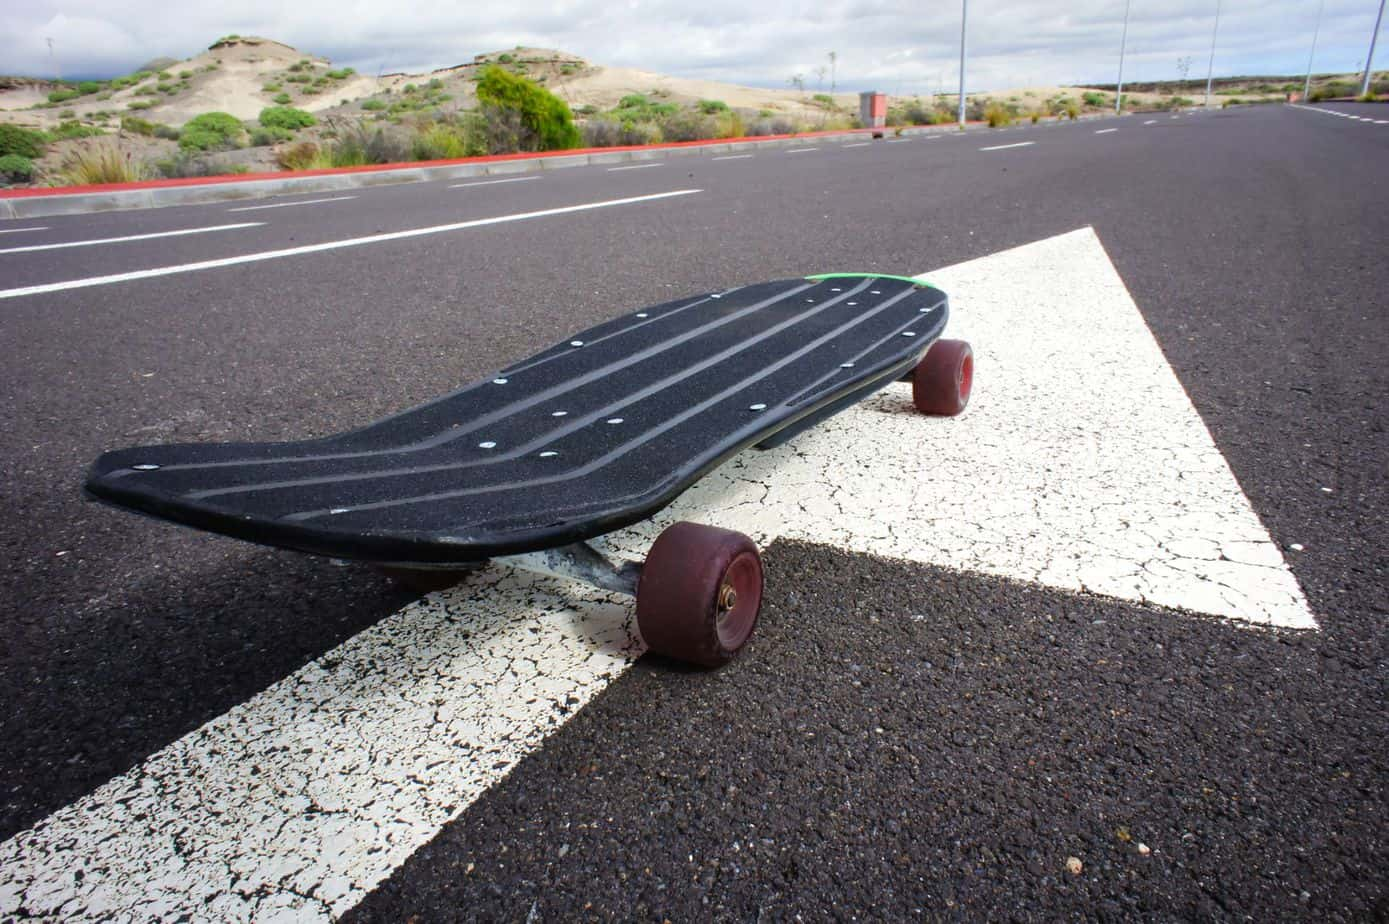 What is a Kicktail Longboard?